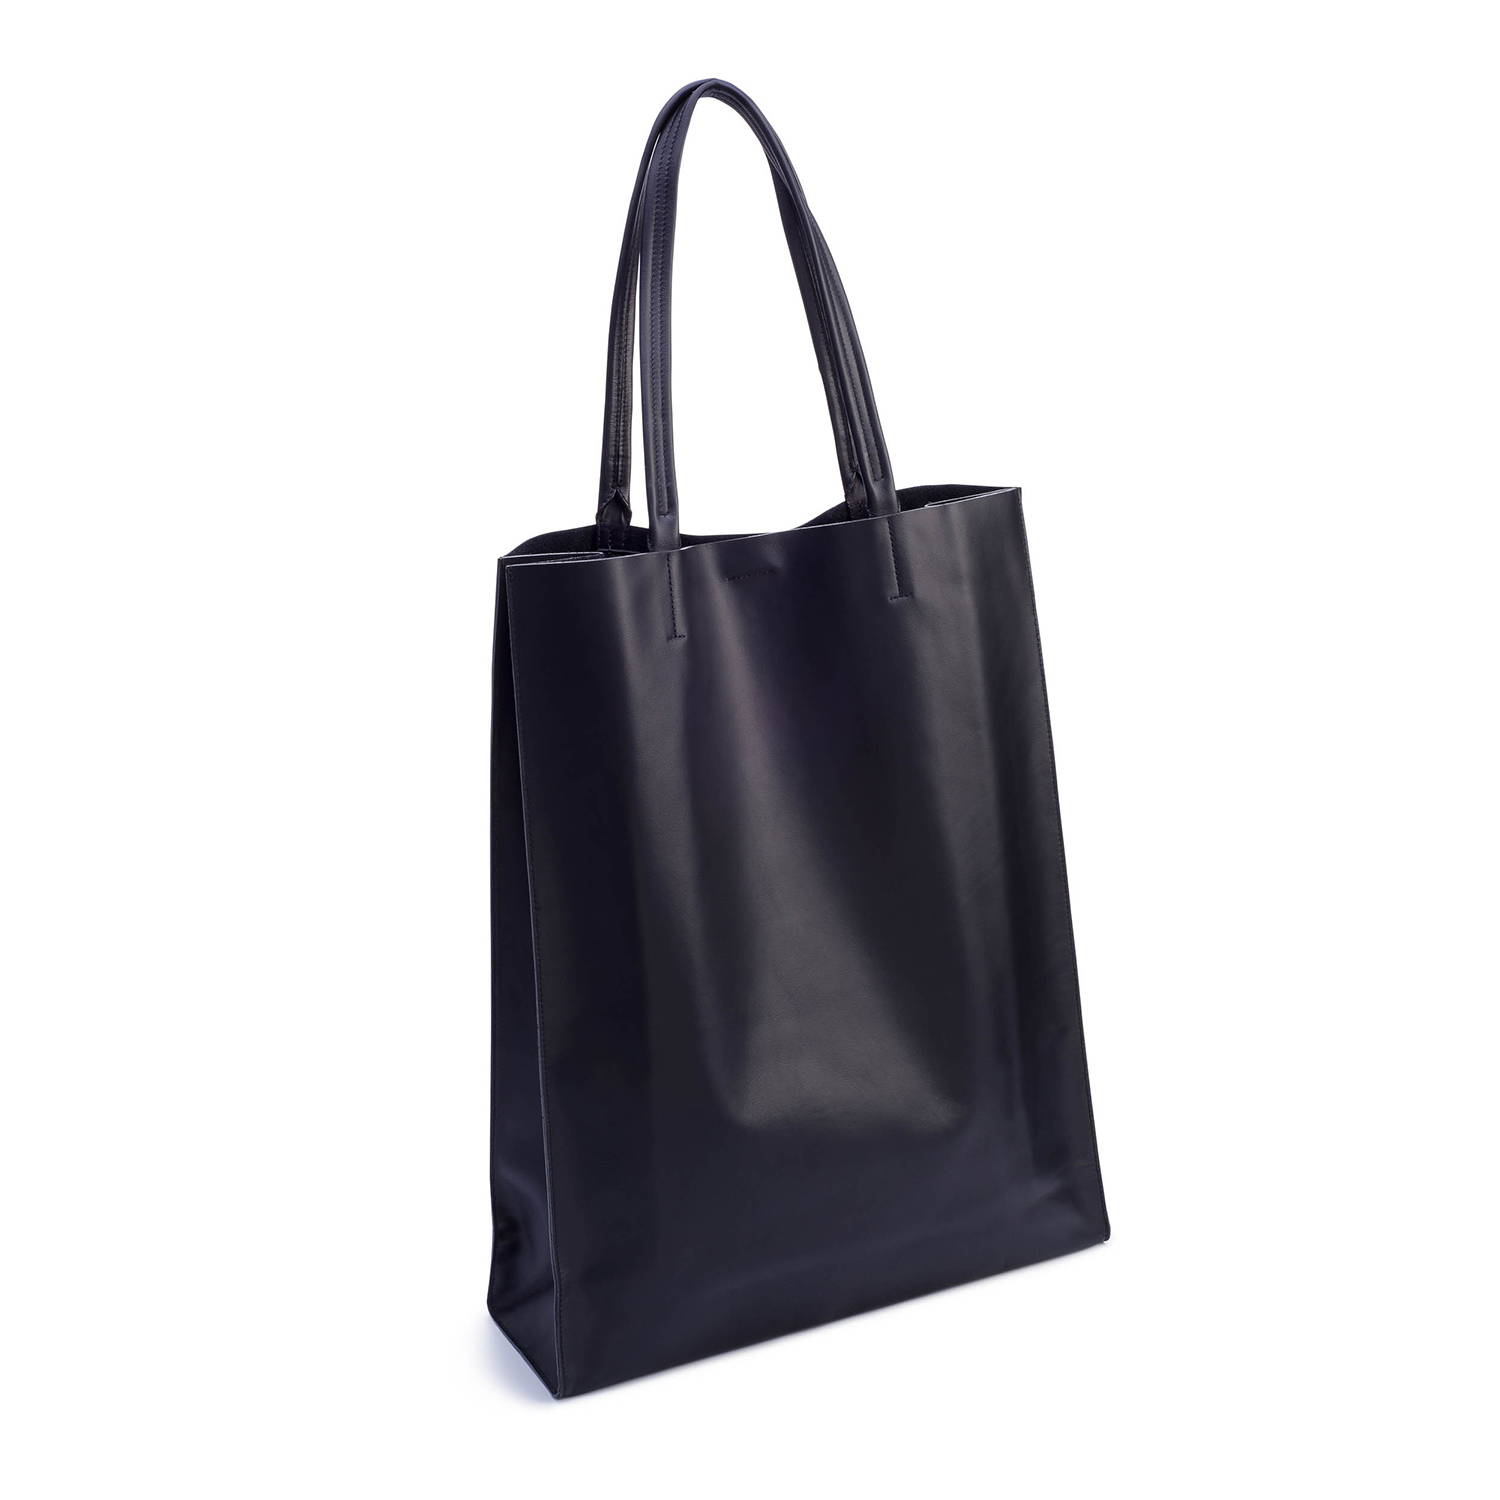 Super Market Tote In Black Leather